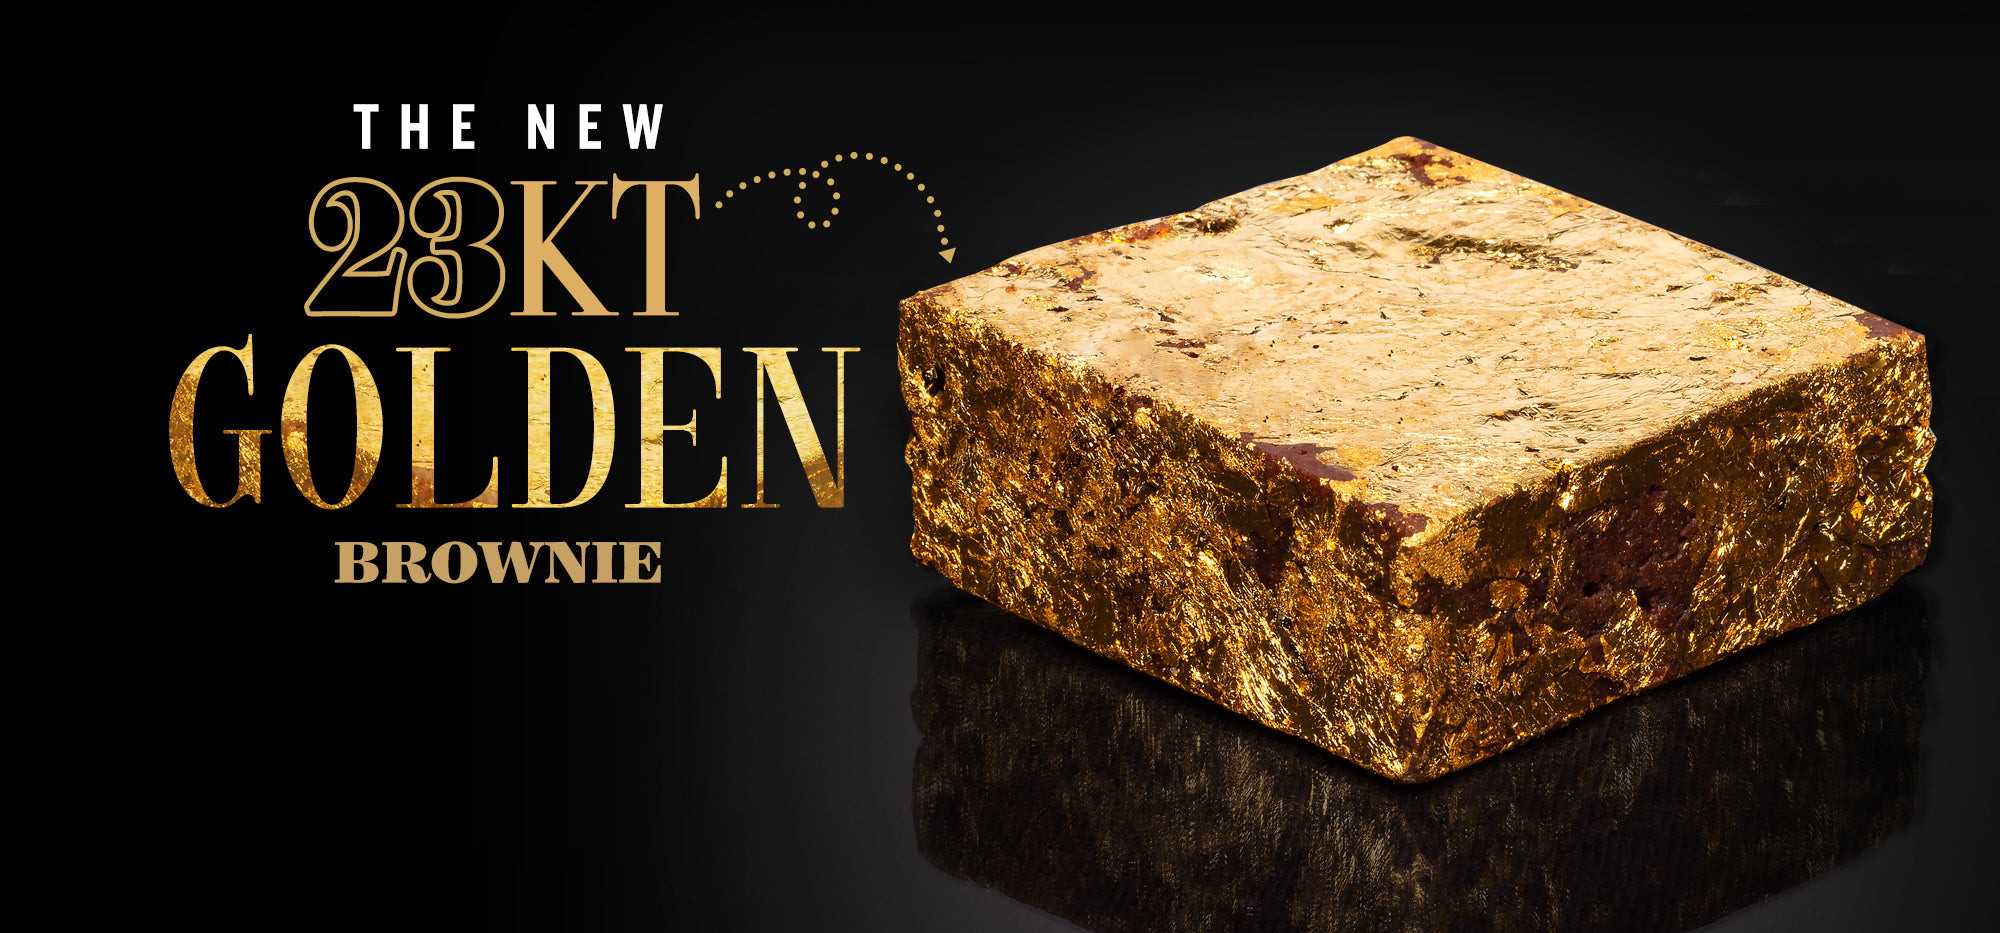 23kt golden brownie | Juliette & Chocolat